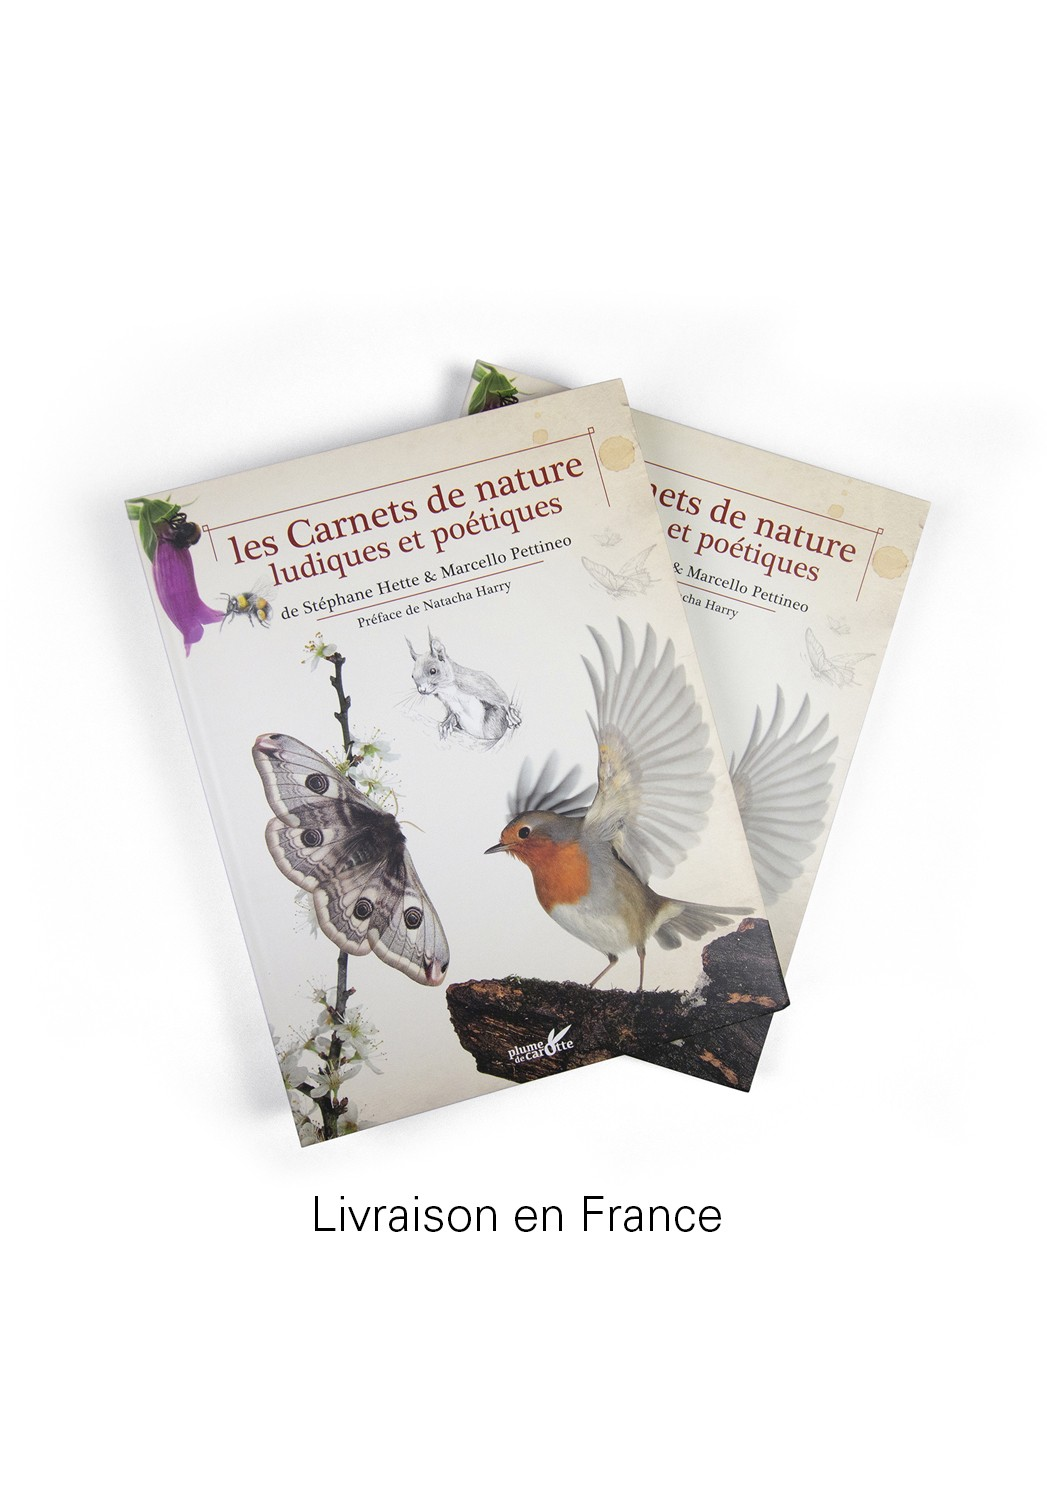 Marcello-art: Books 2 books Playful and Poetic Nature Notebooks delivery france